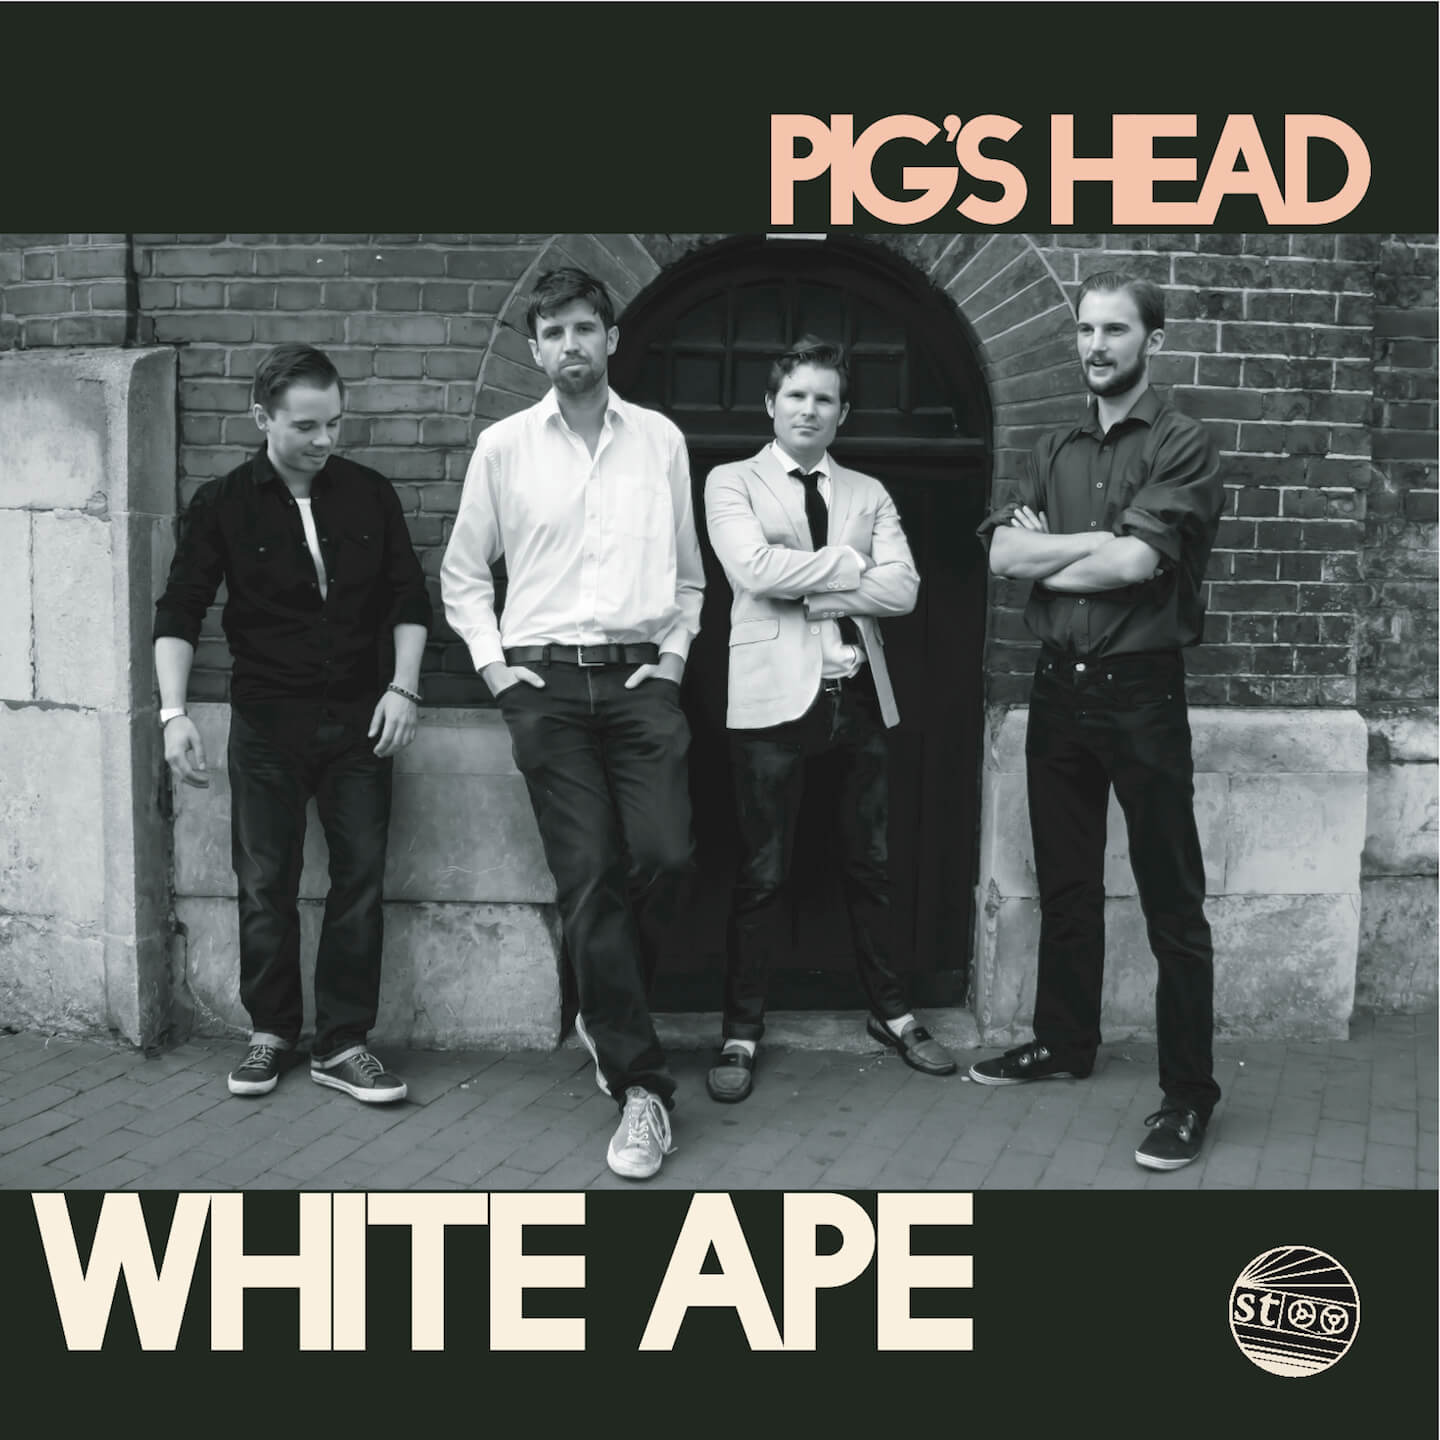 White Ape – Pig's Head Artwork